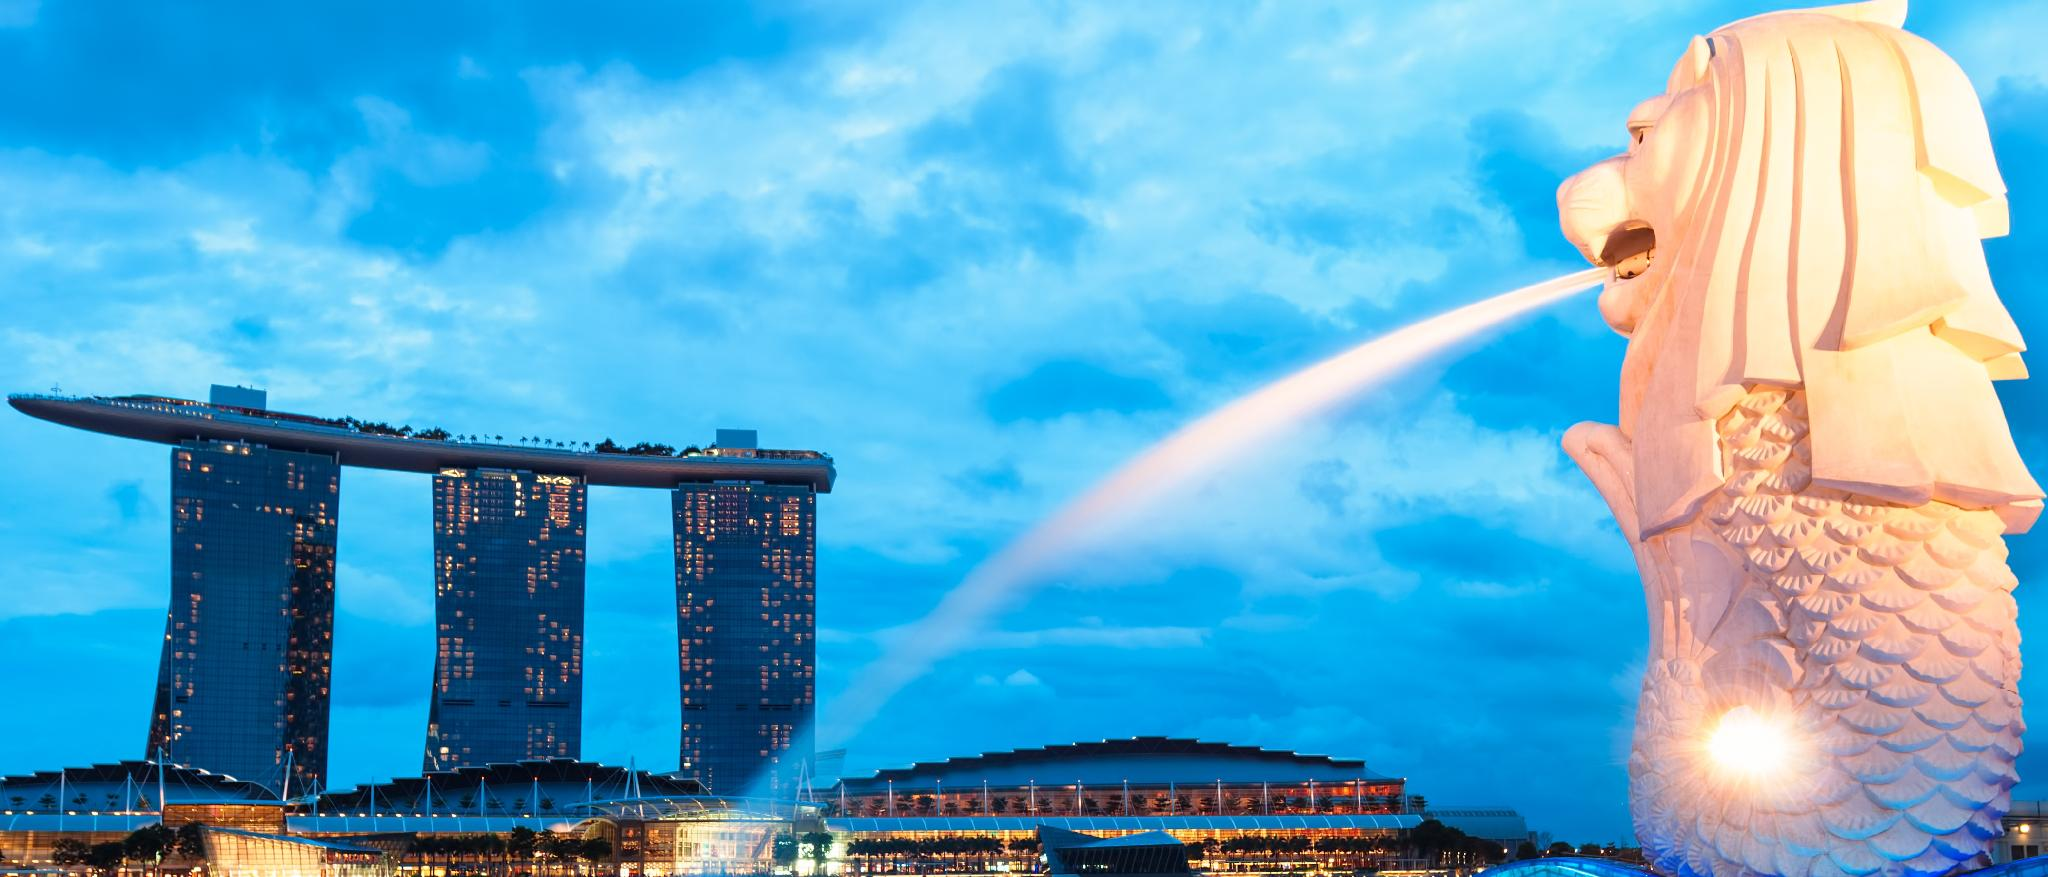 Indonesian Rupiah To Usd Singapore Hotels Singapore Great Savings And Real Reviews